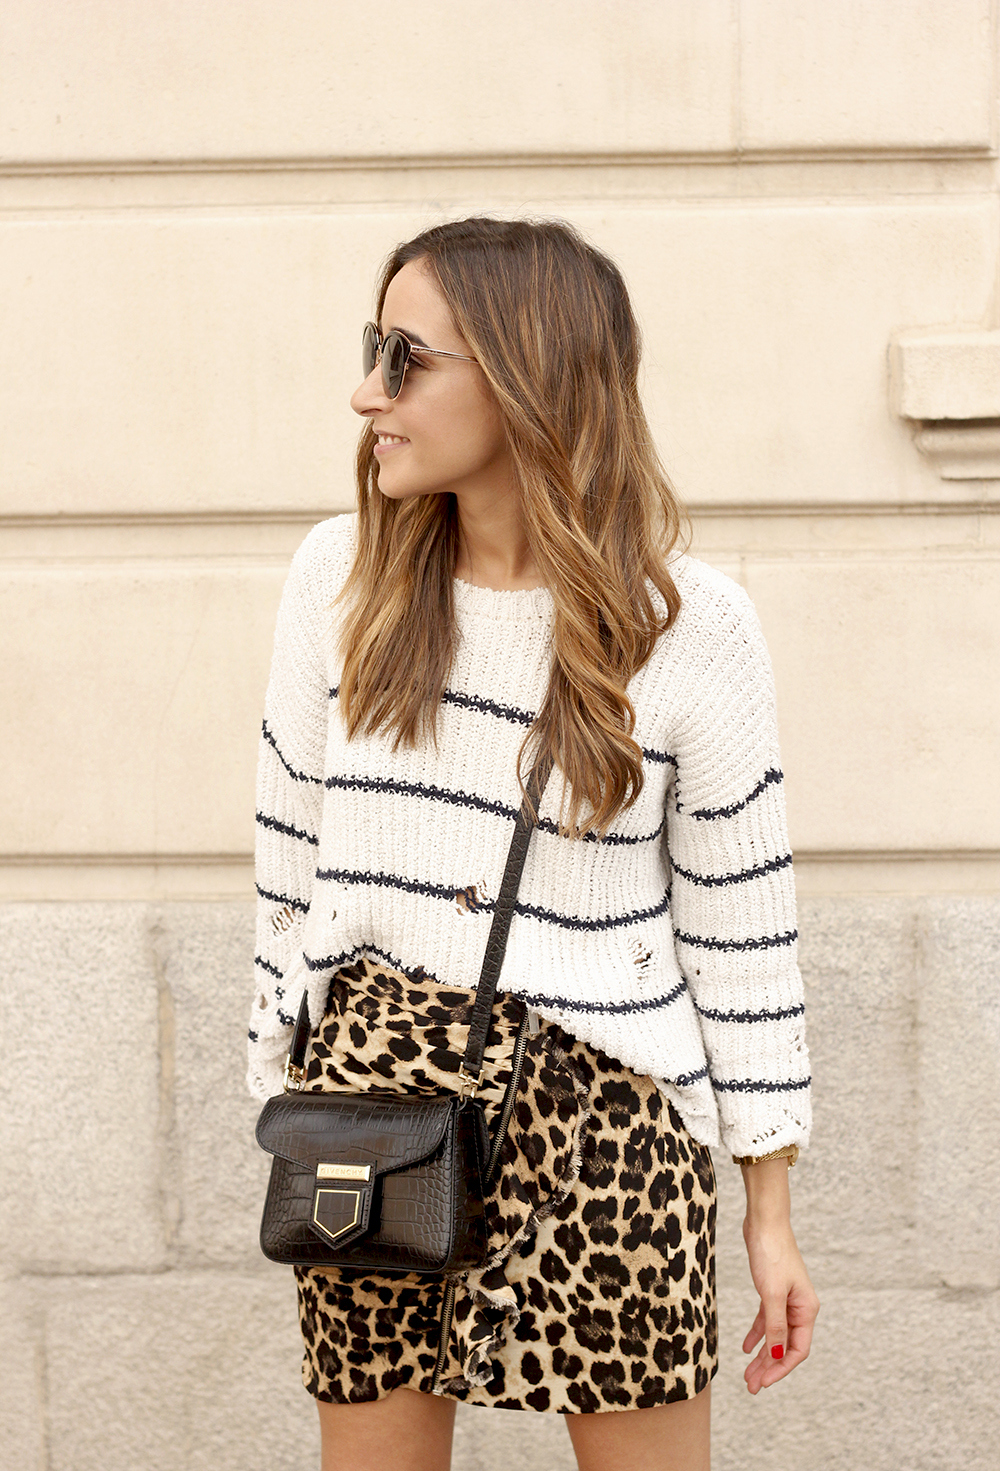 leopard printed skirt striped sweater givenchy bag outfit fashion style trend13